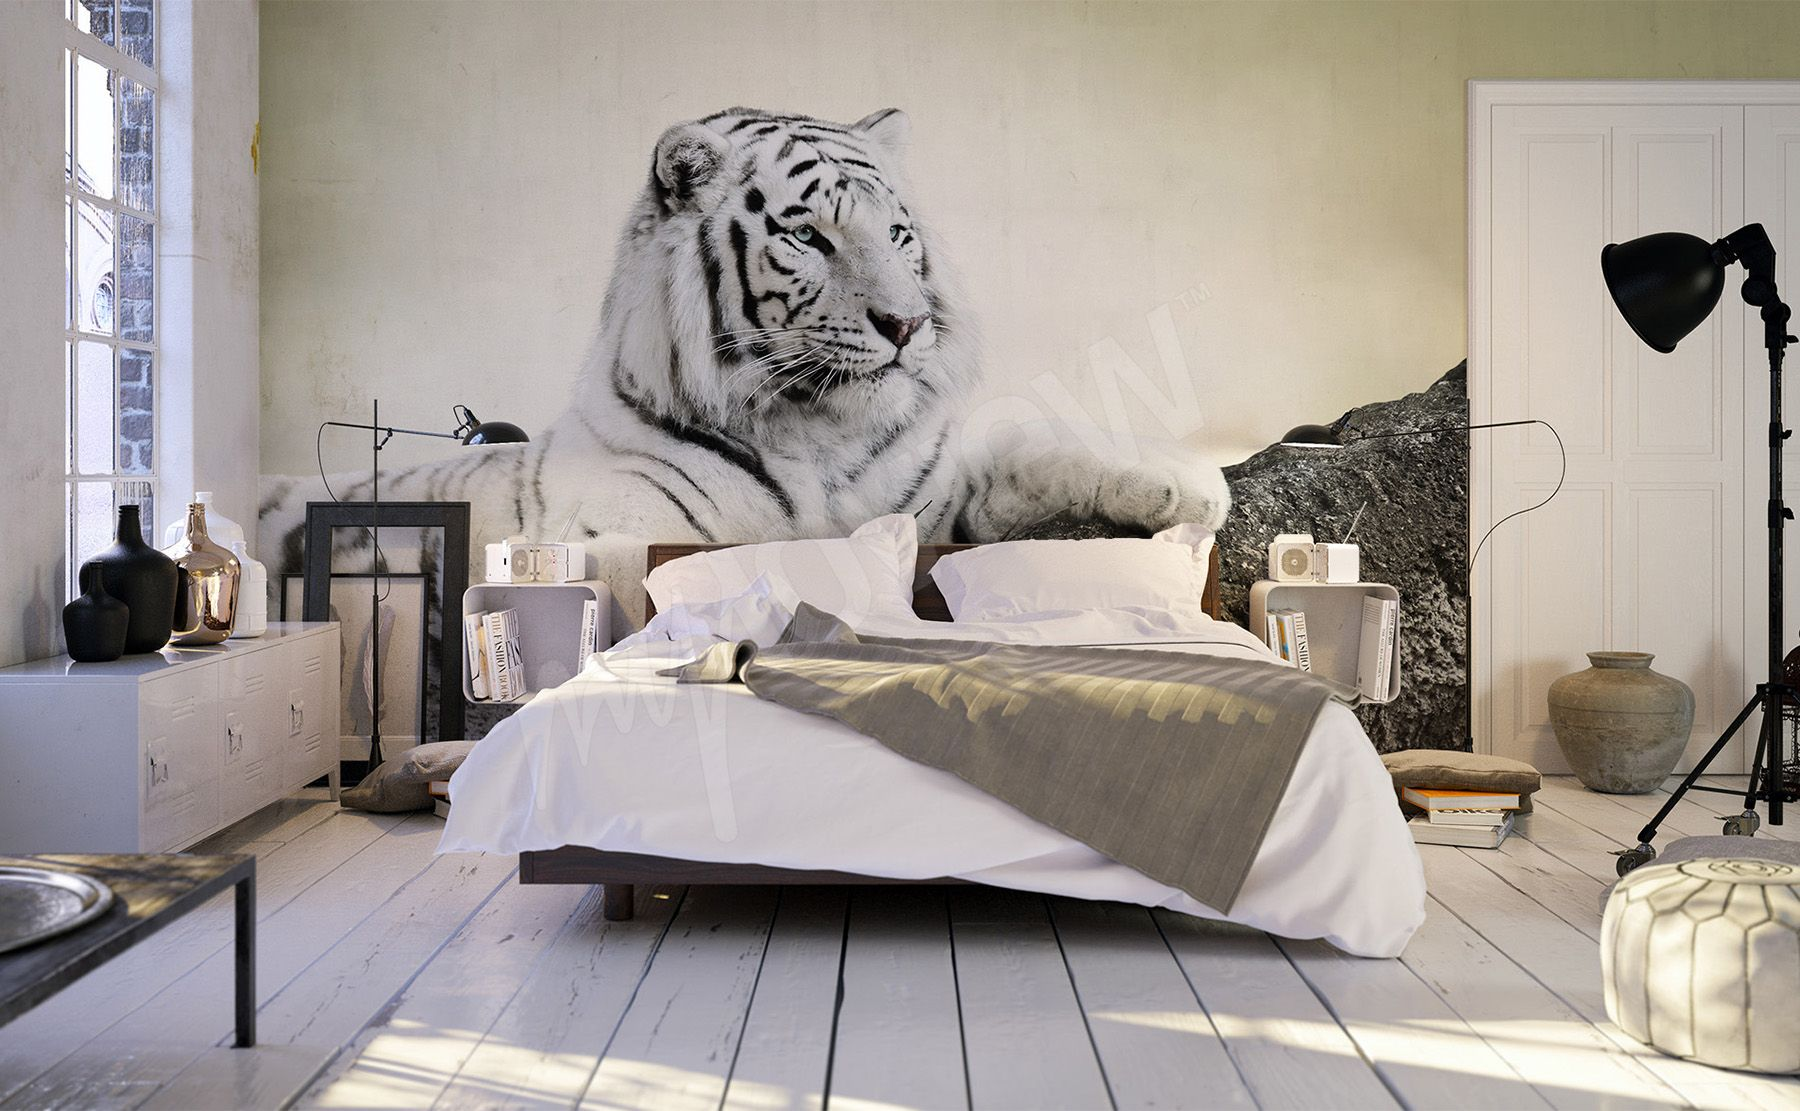 Wall Mural White Tiger With Images White Tiger White Mural